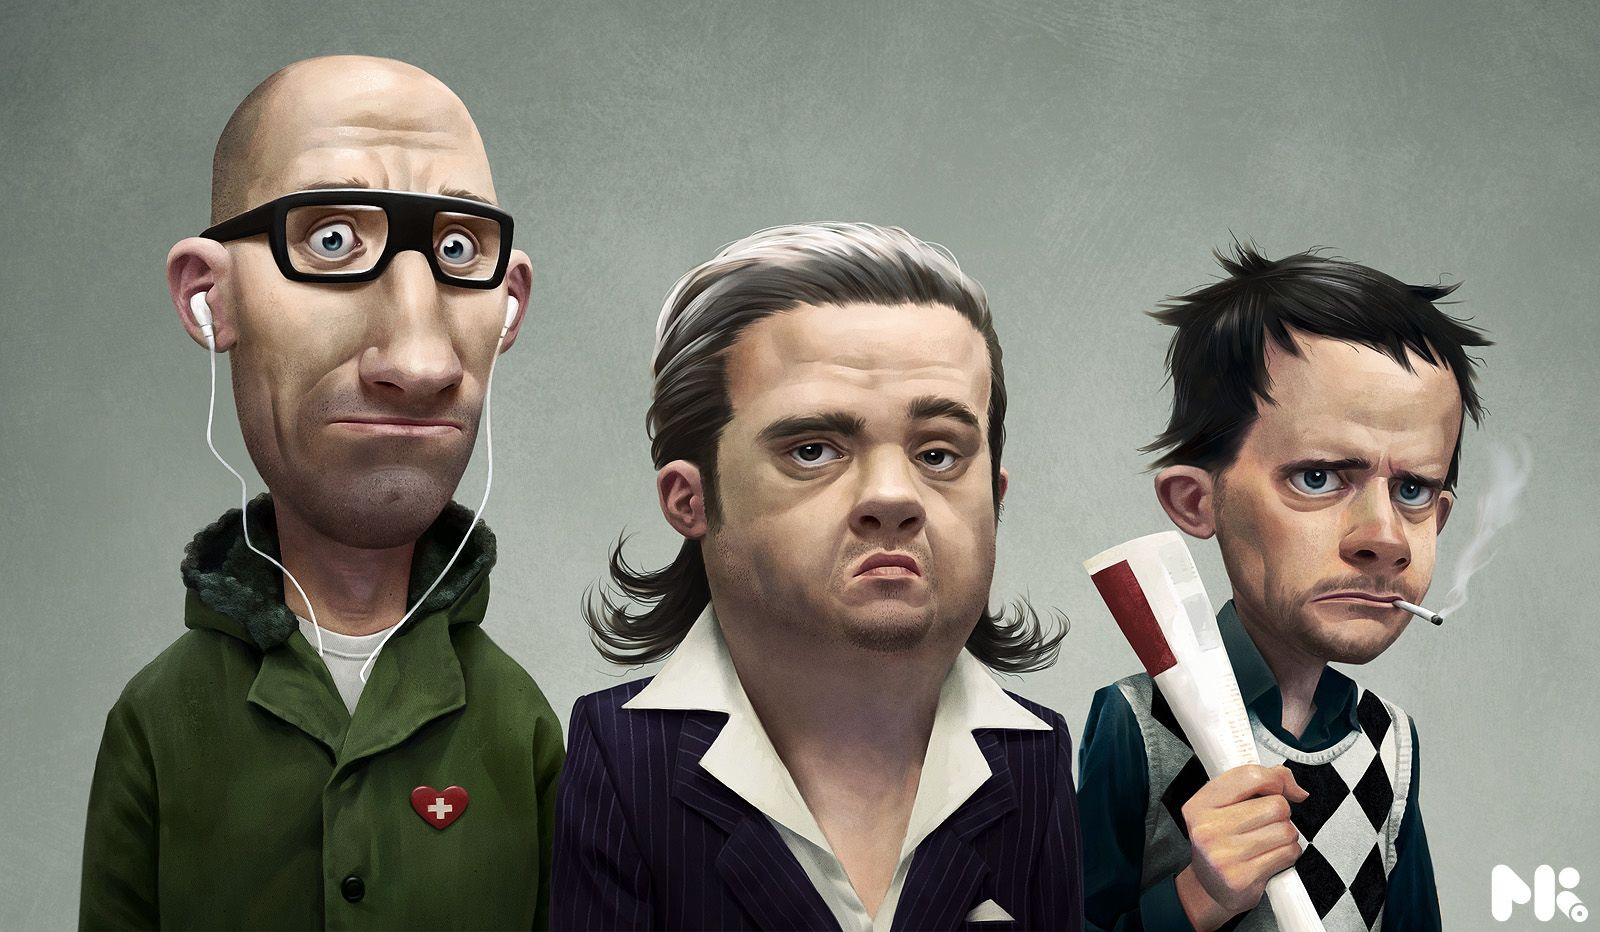 Agency Characters by michaelkutsche